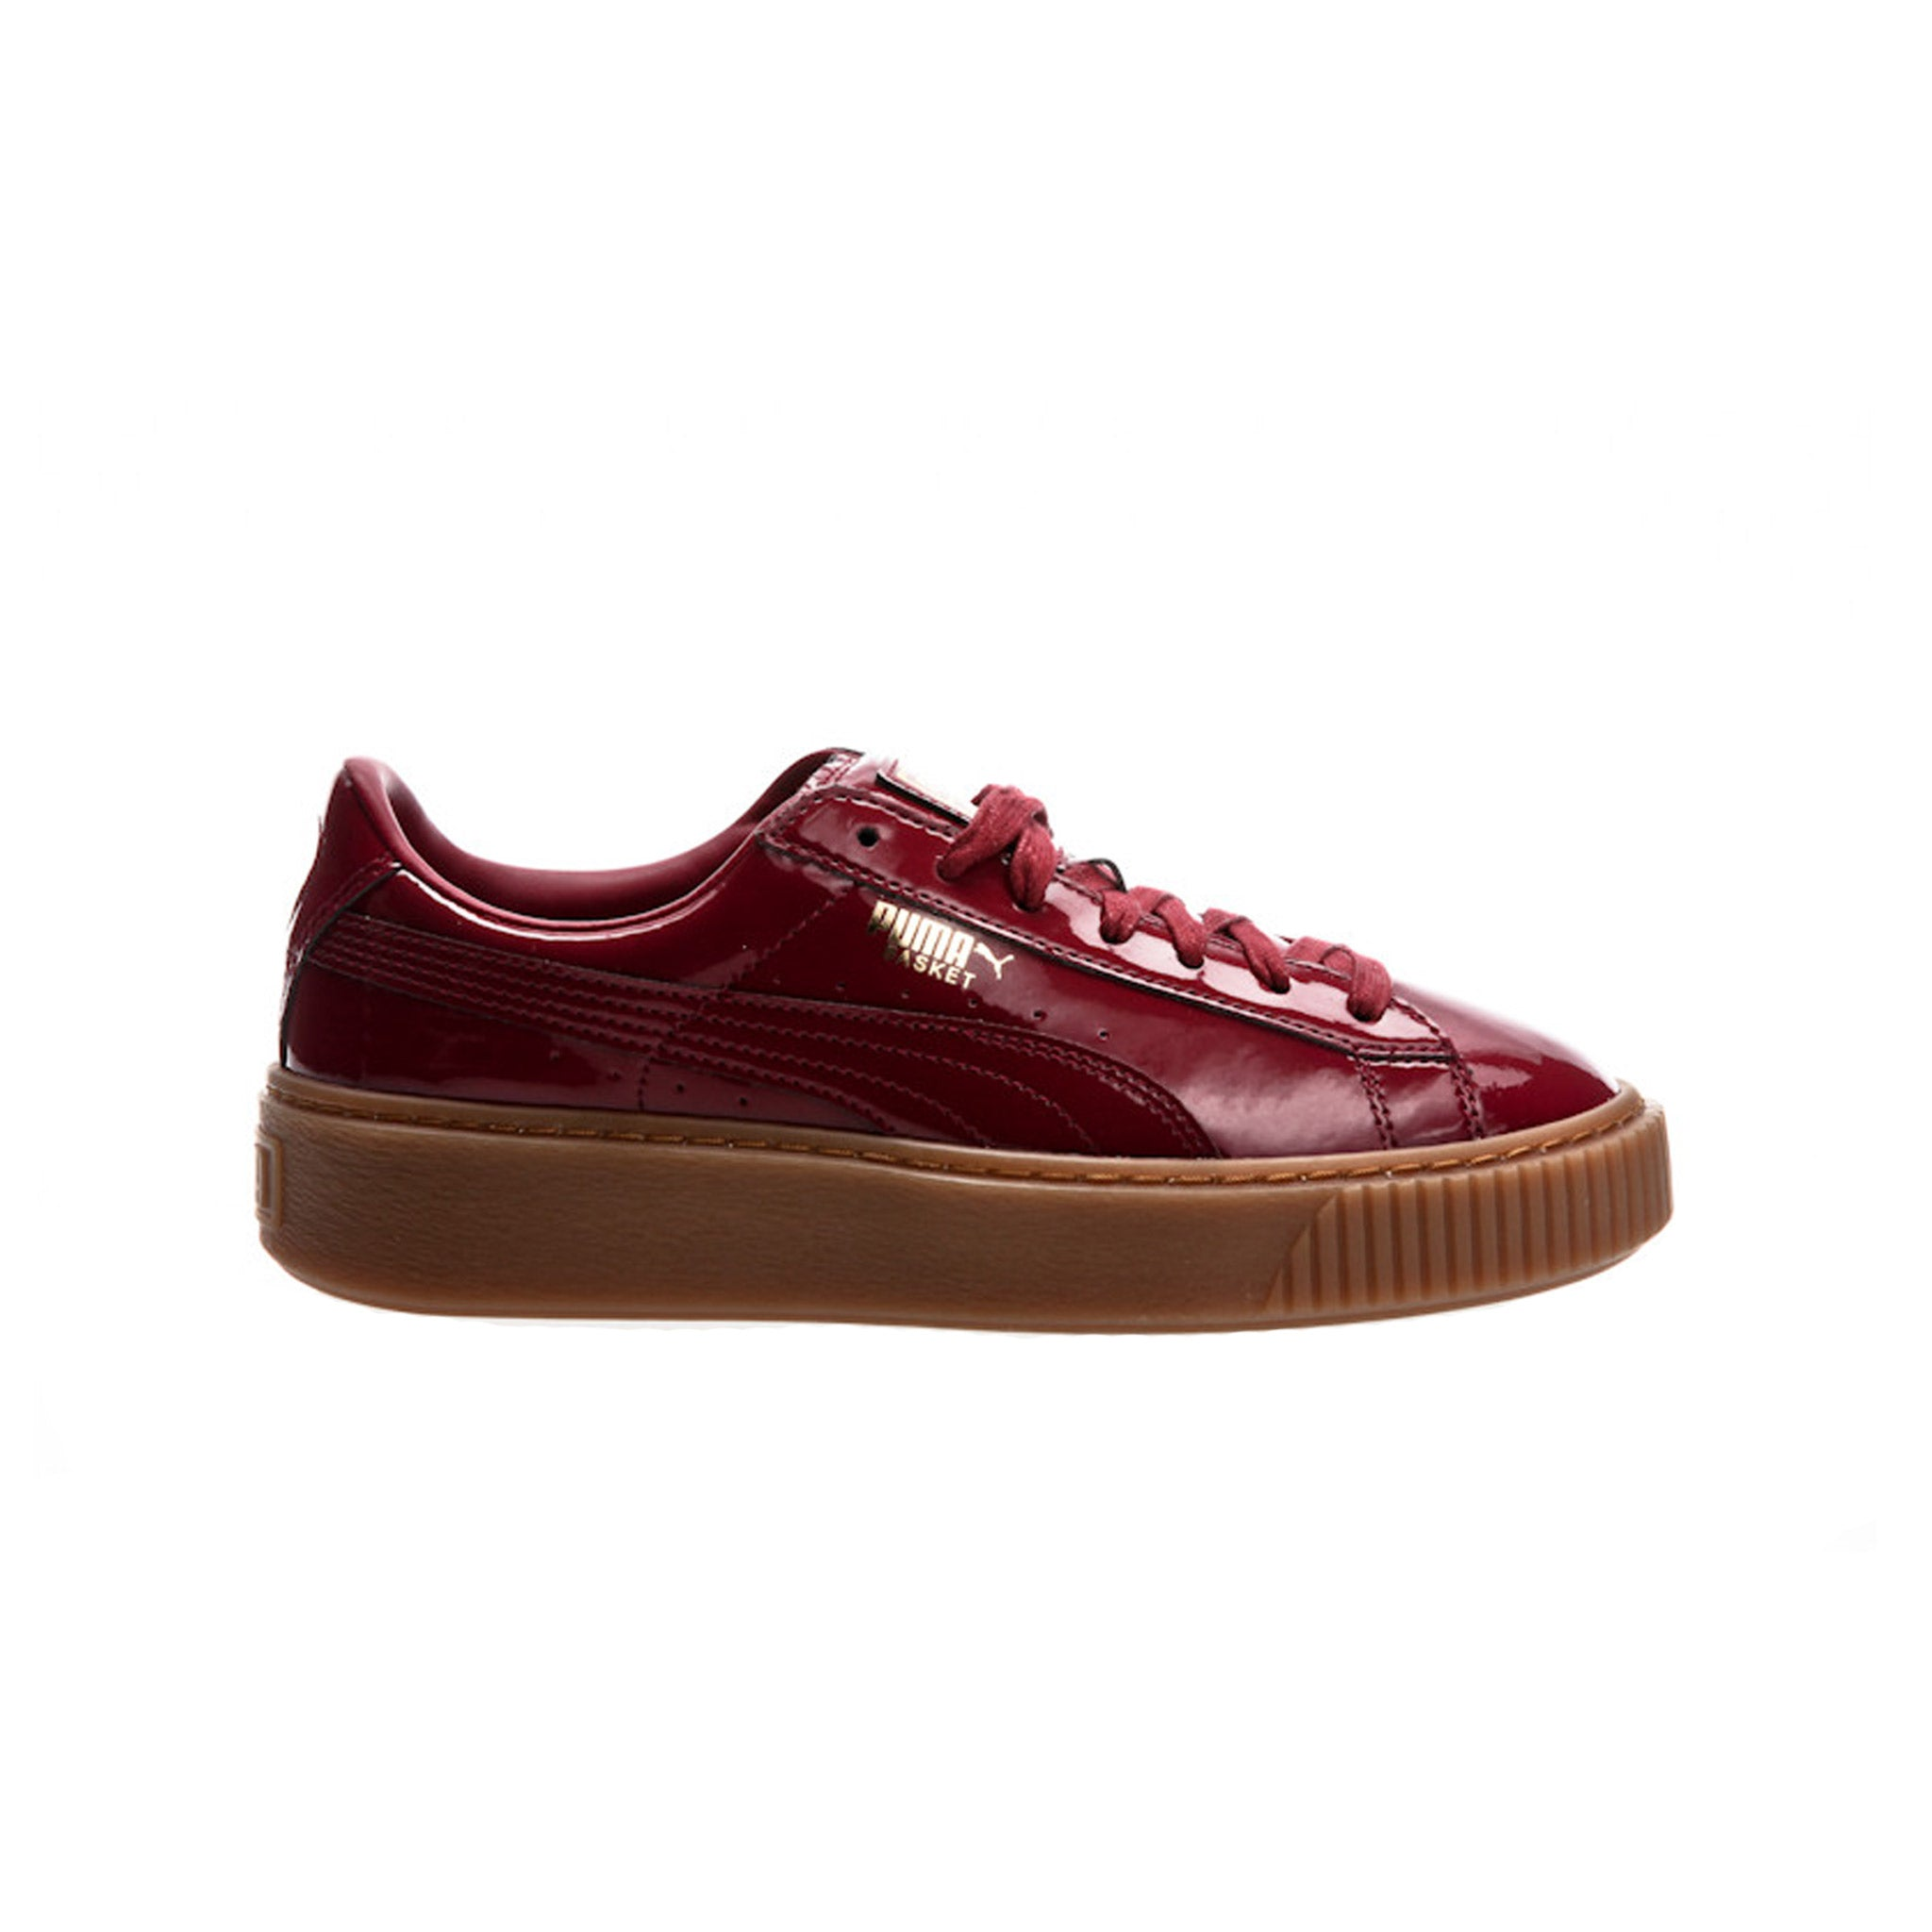 Puma Basket Platform Patent Red Sneakers Side